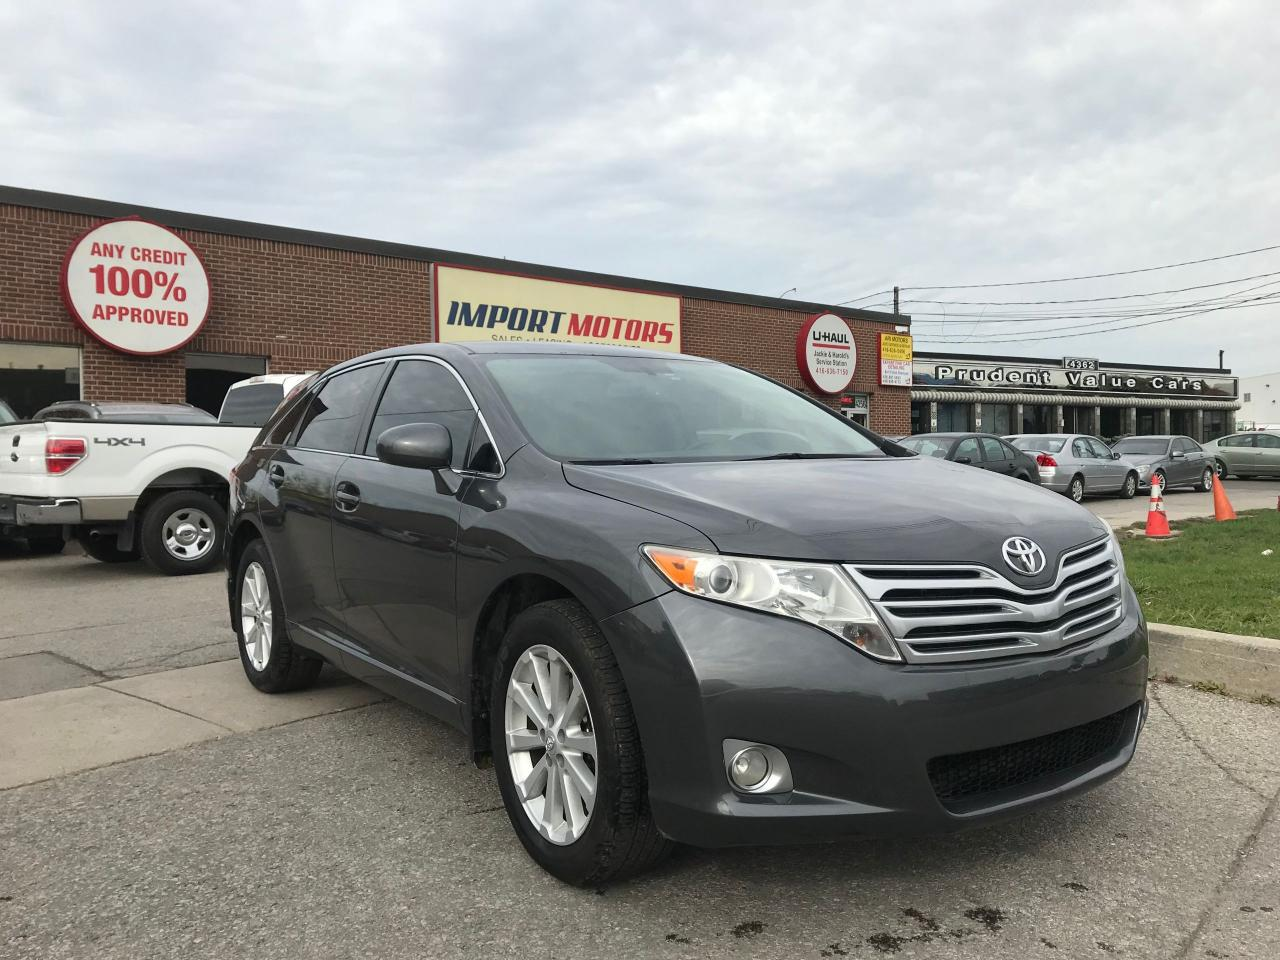 used 2010 toyota venza awd low kilometres one owner accident free for sale in north york. Black Bedroom Furniture Sets. Home Design Ideas